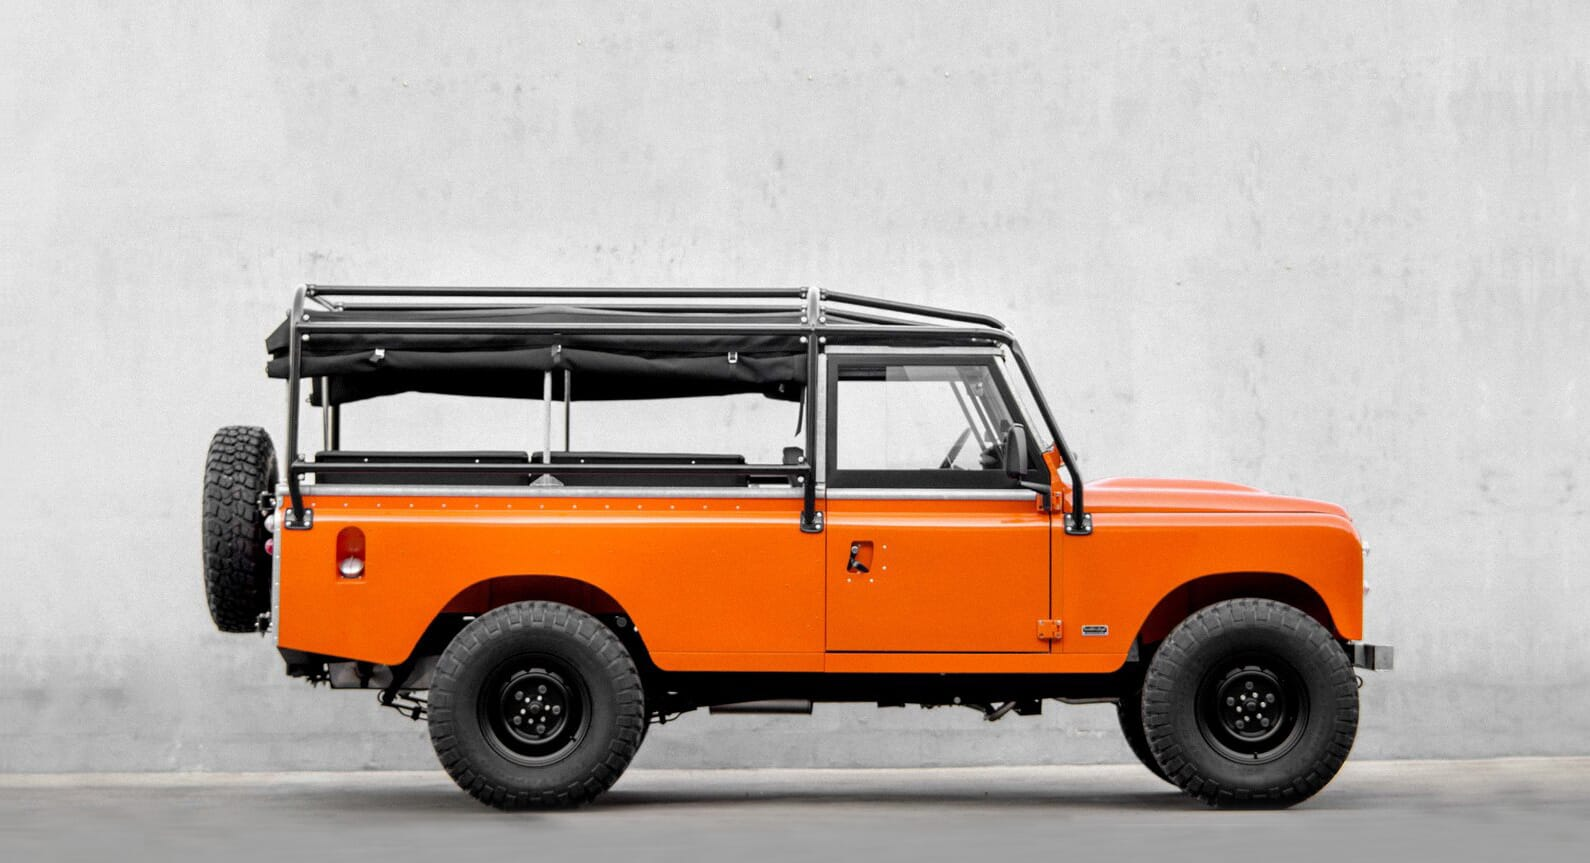 A First Look At The Tangerine Orange Land Rover by Cool & Vintage